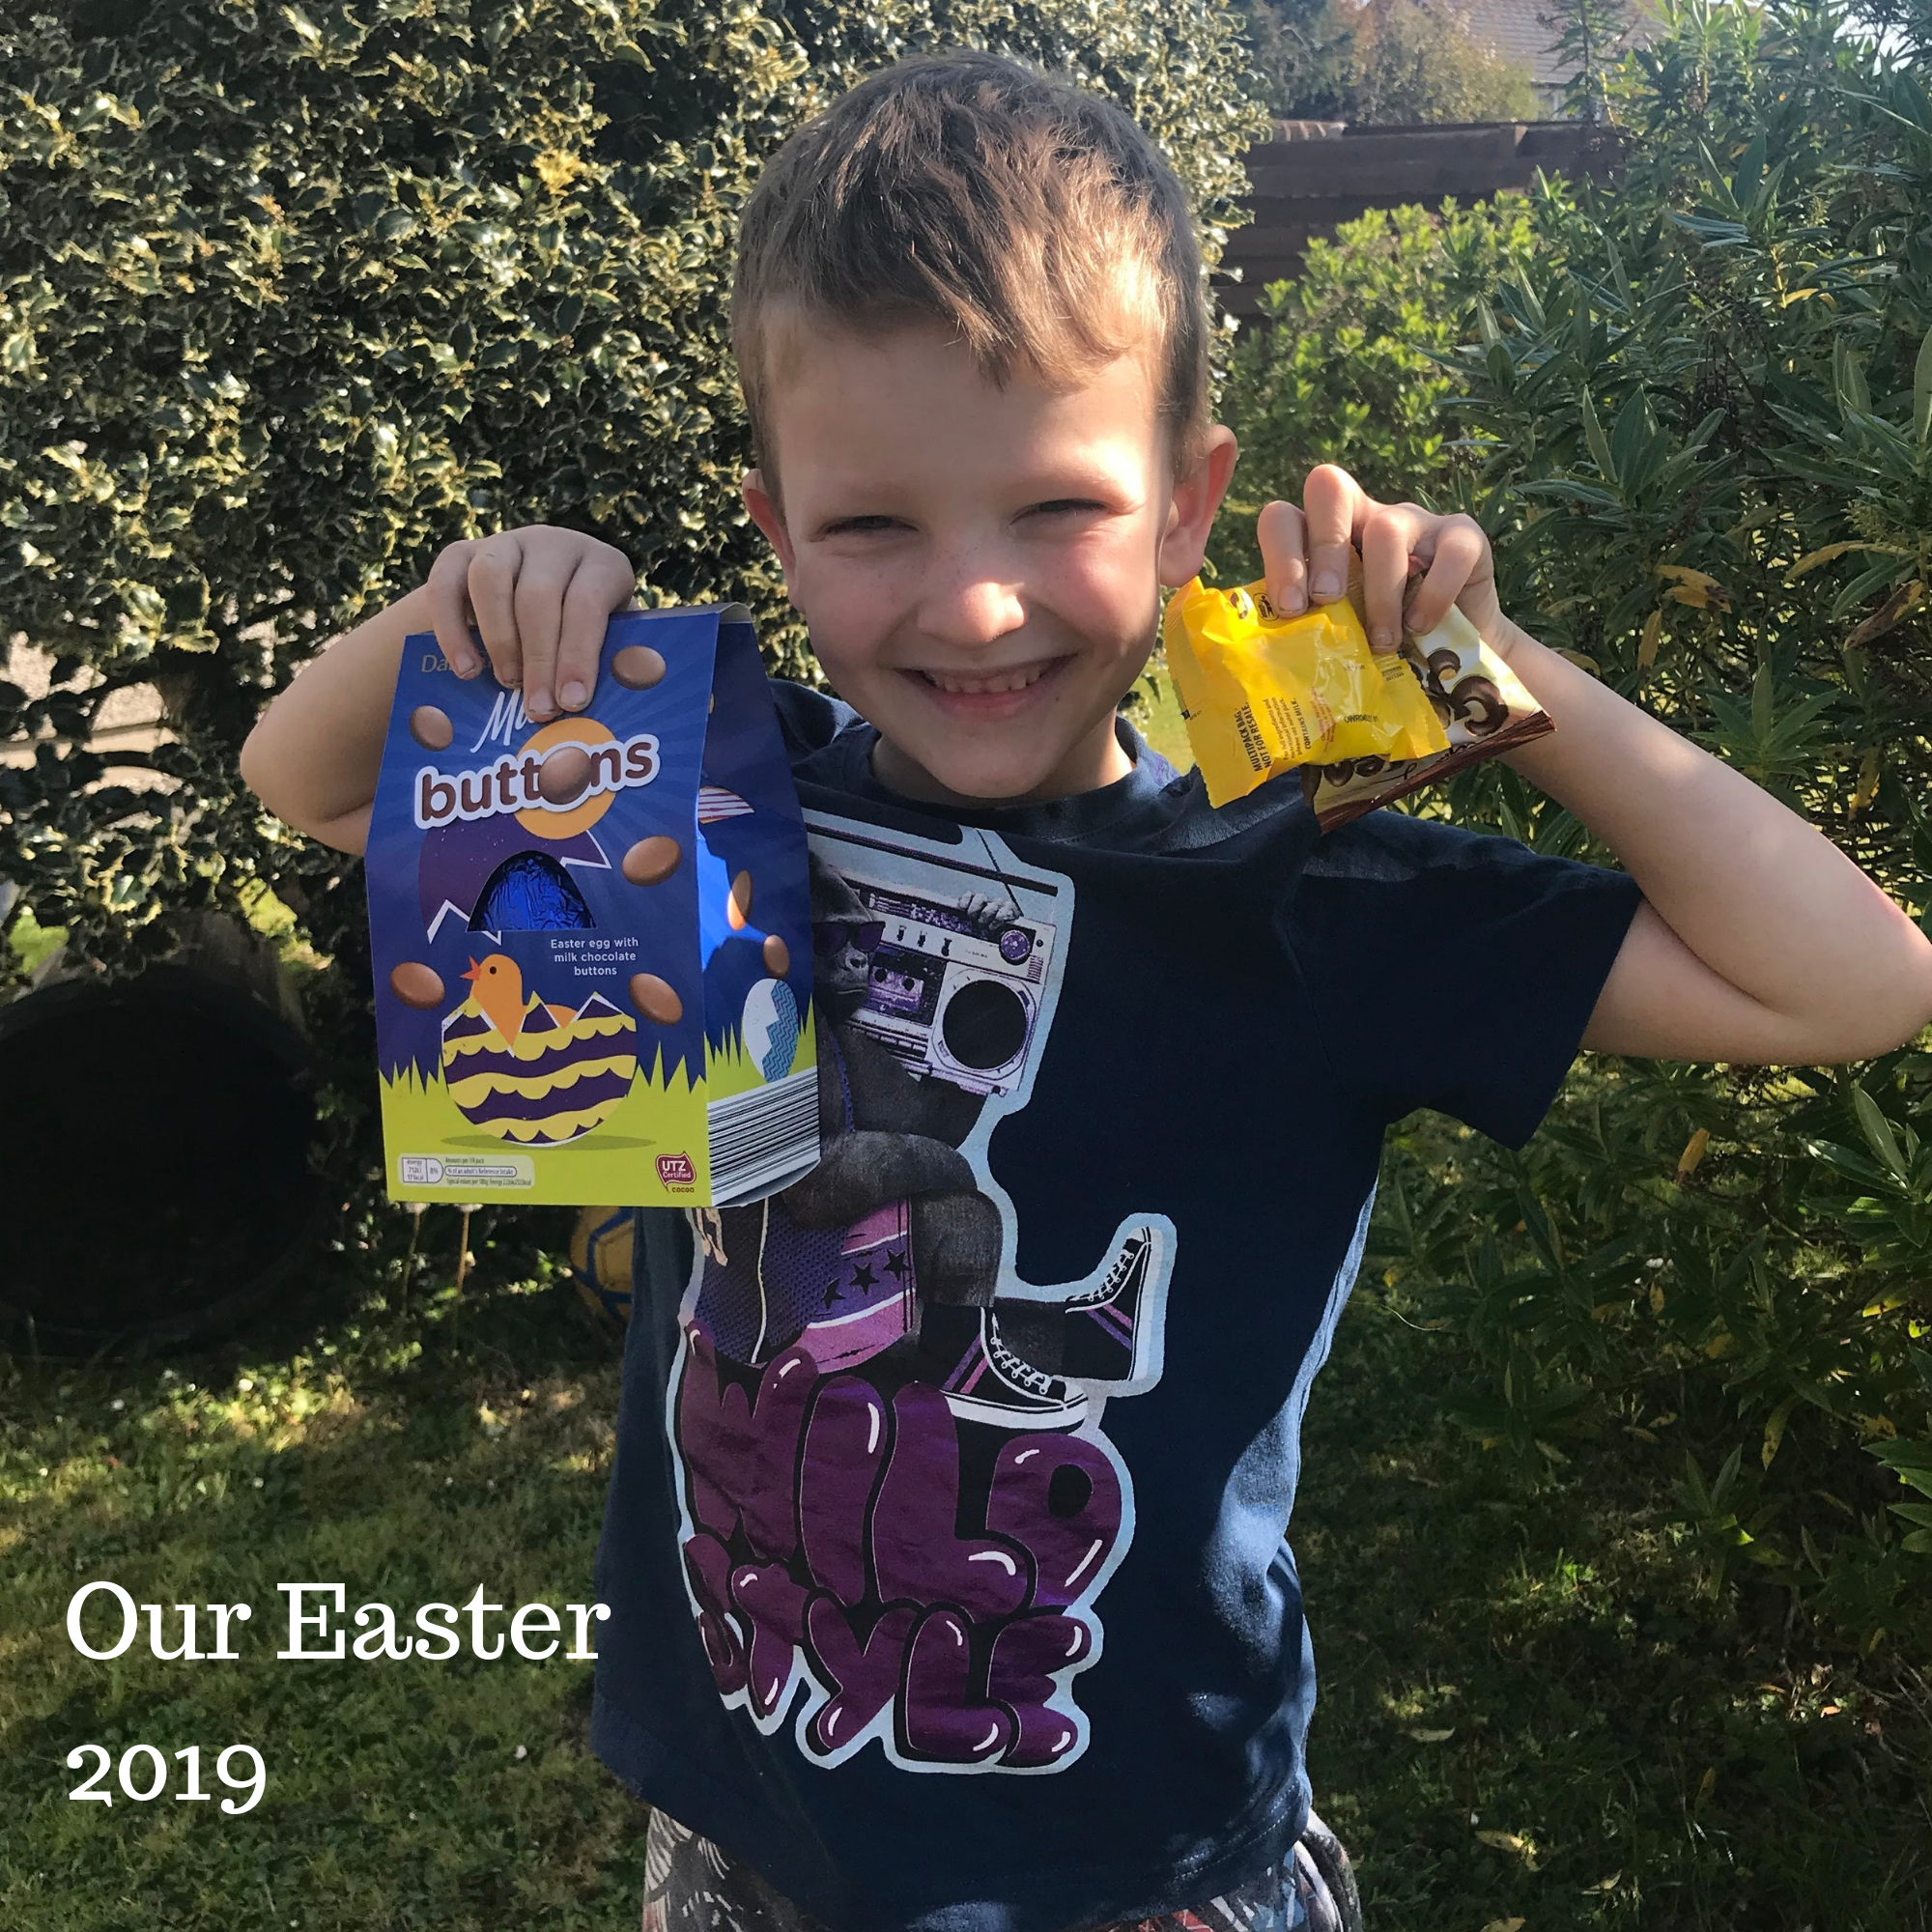 Our Easter 2019